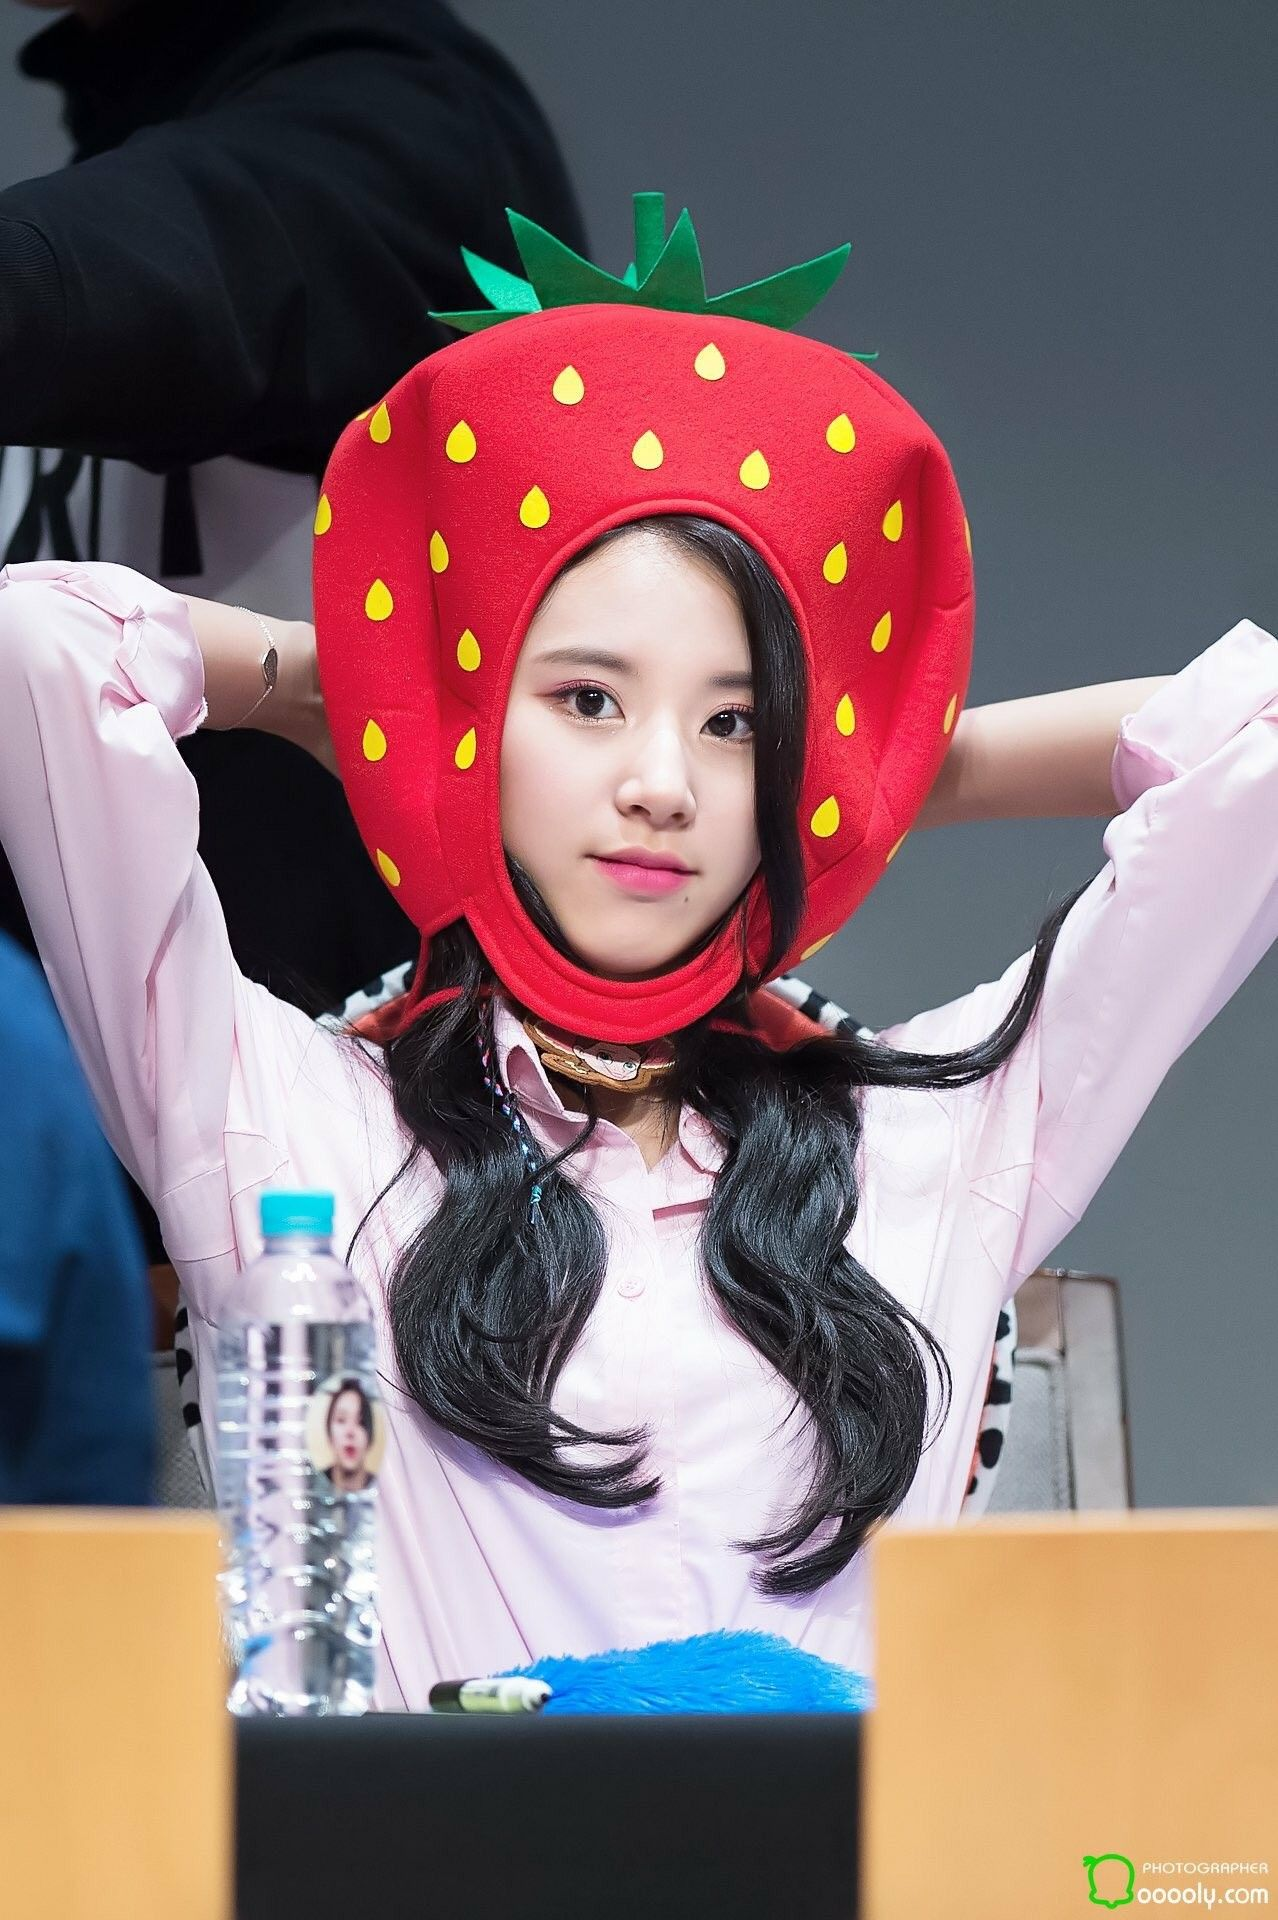 stanchaeyoung_3a